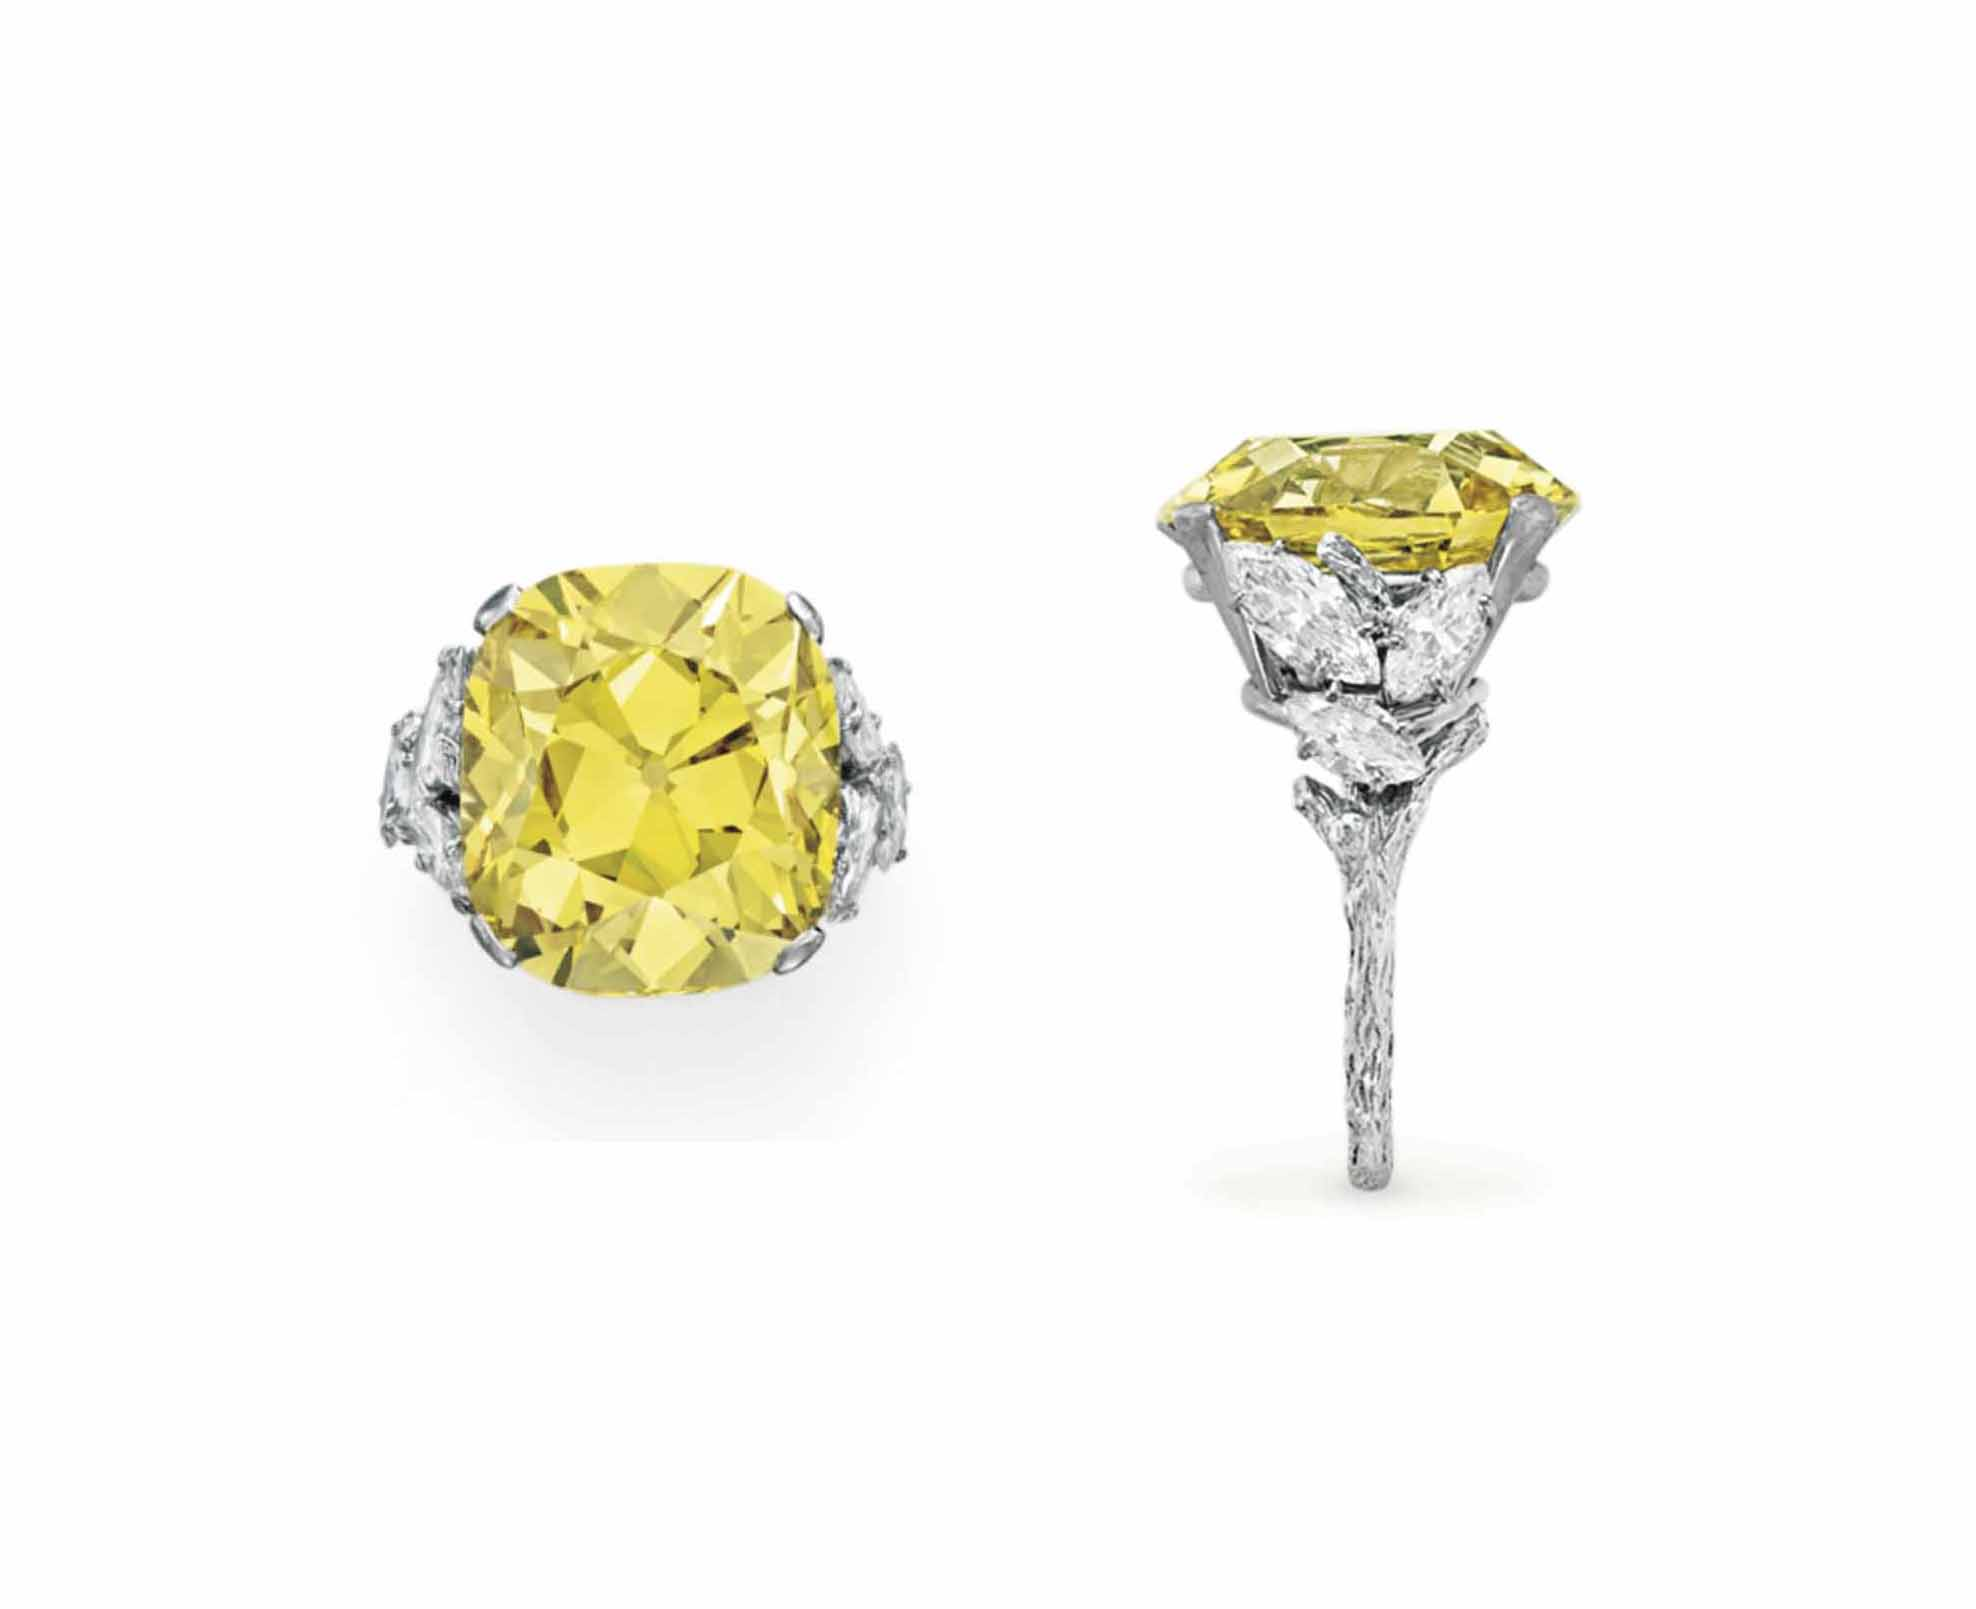 A TREATED COLORED DIAMOND AND DIAMOND RING, BY STERLÉ